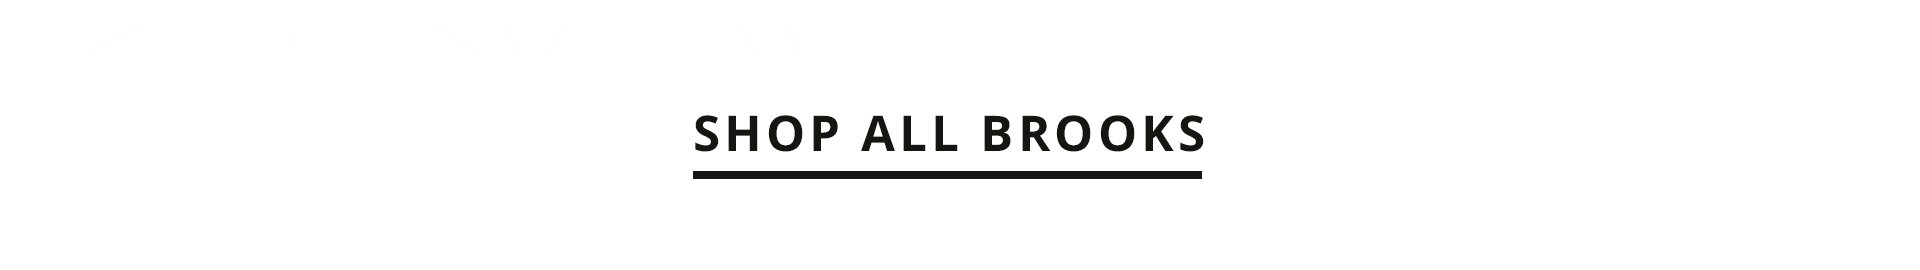 Shop All Brooks